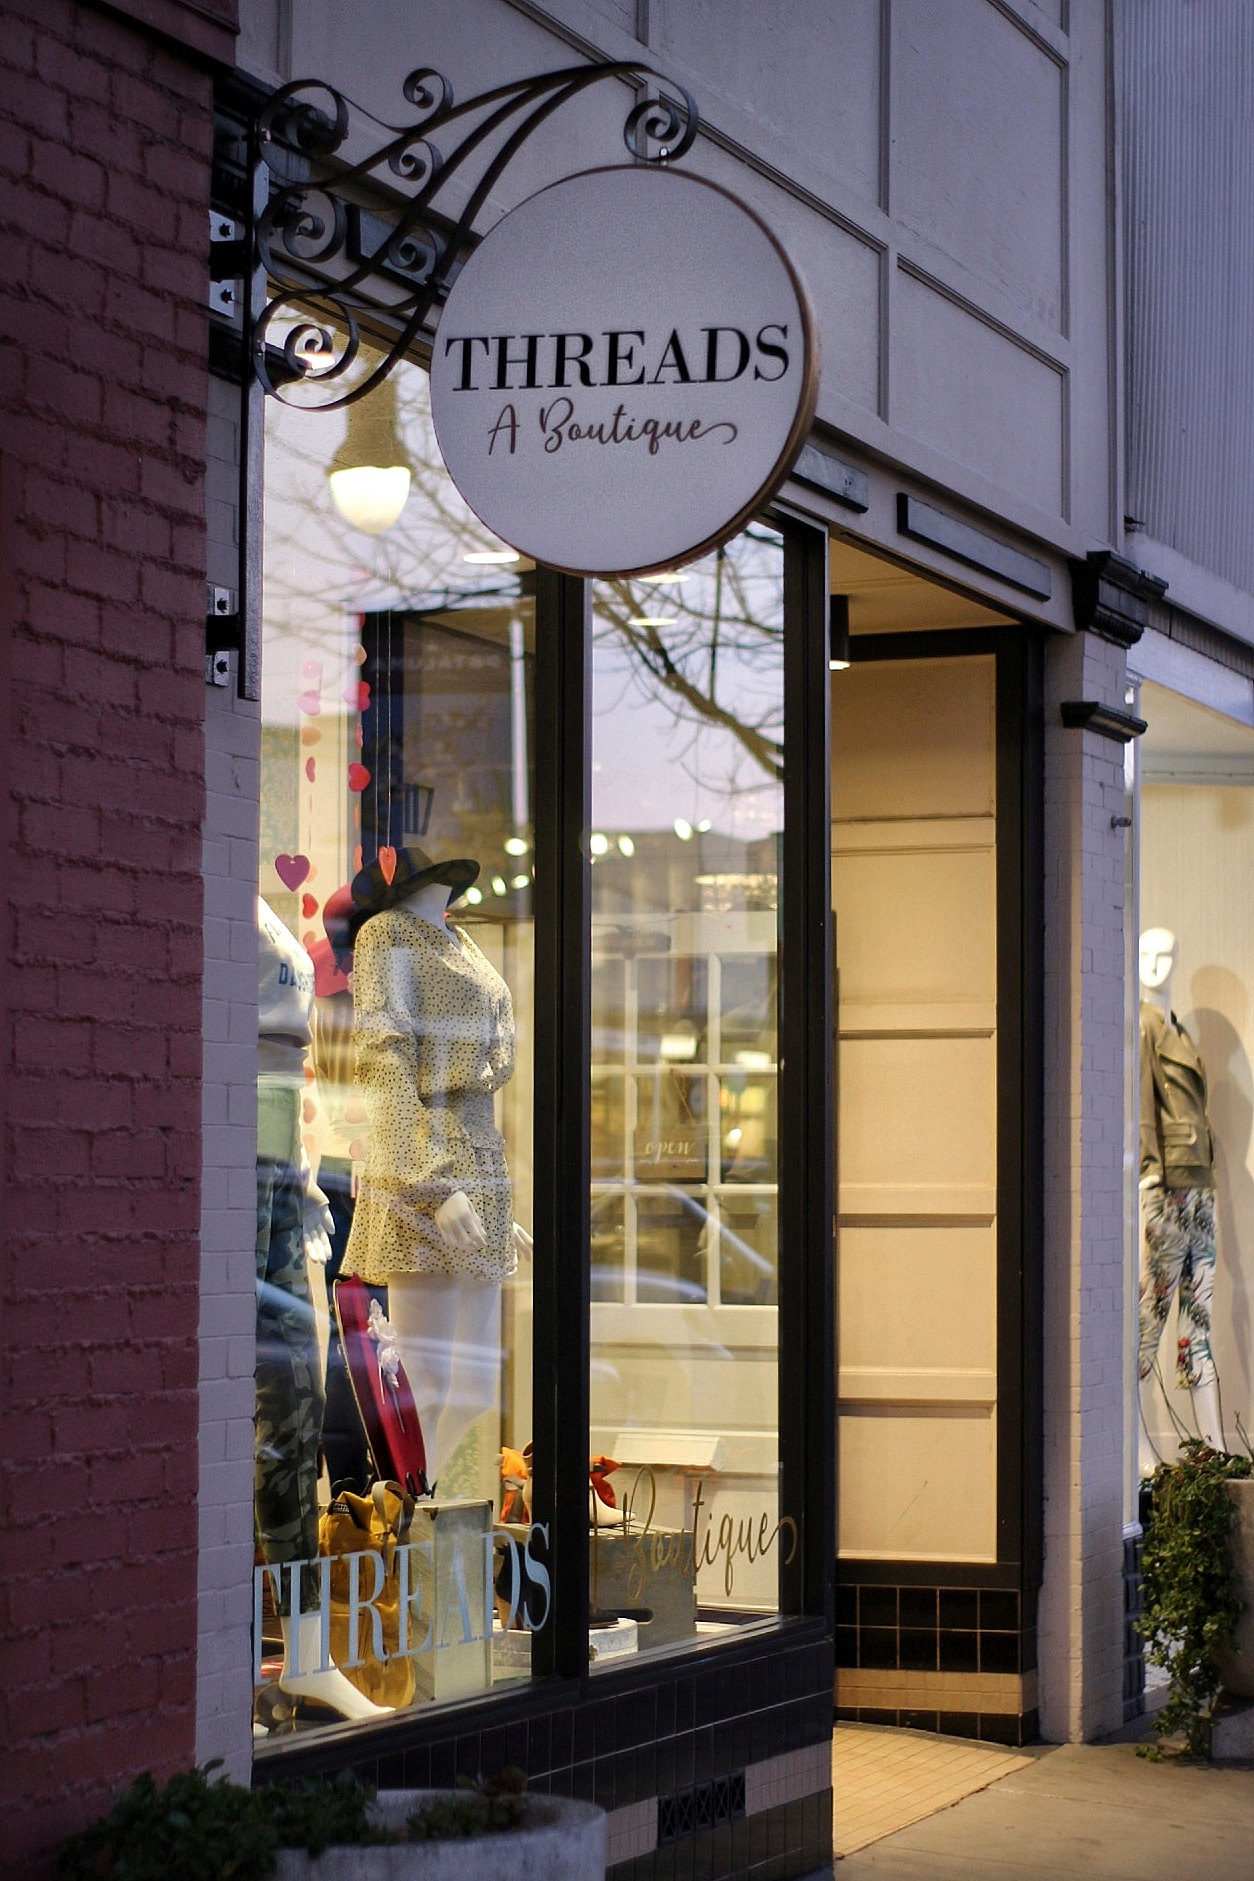 Threads A Boutique Storefront